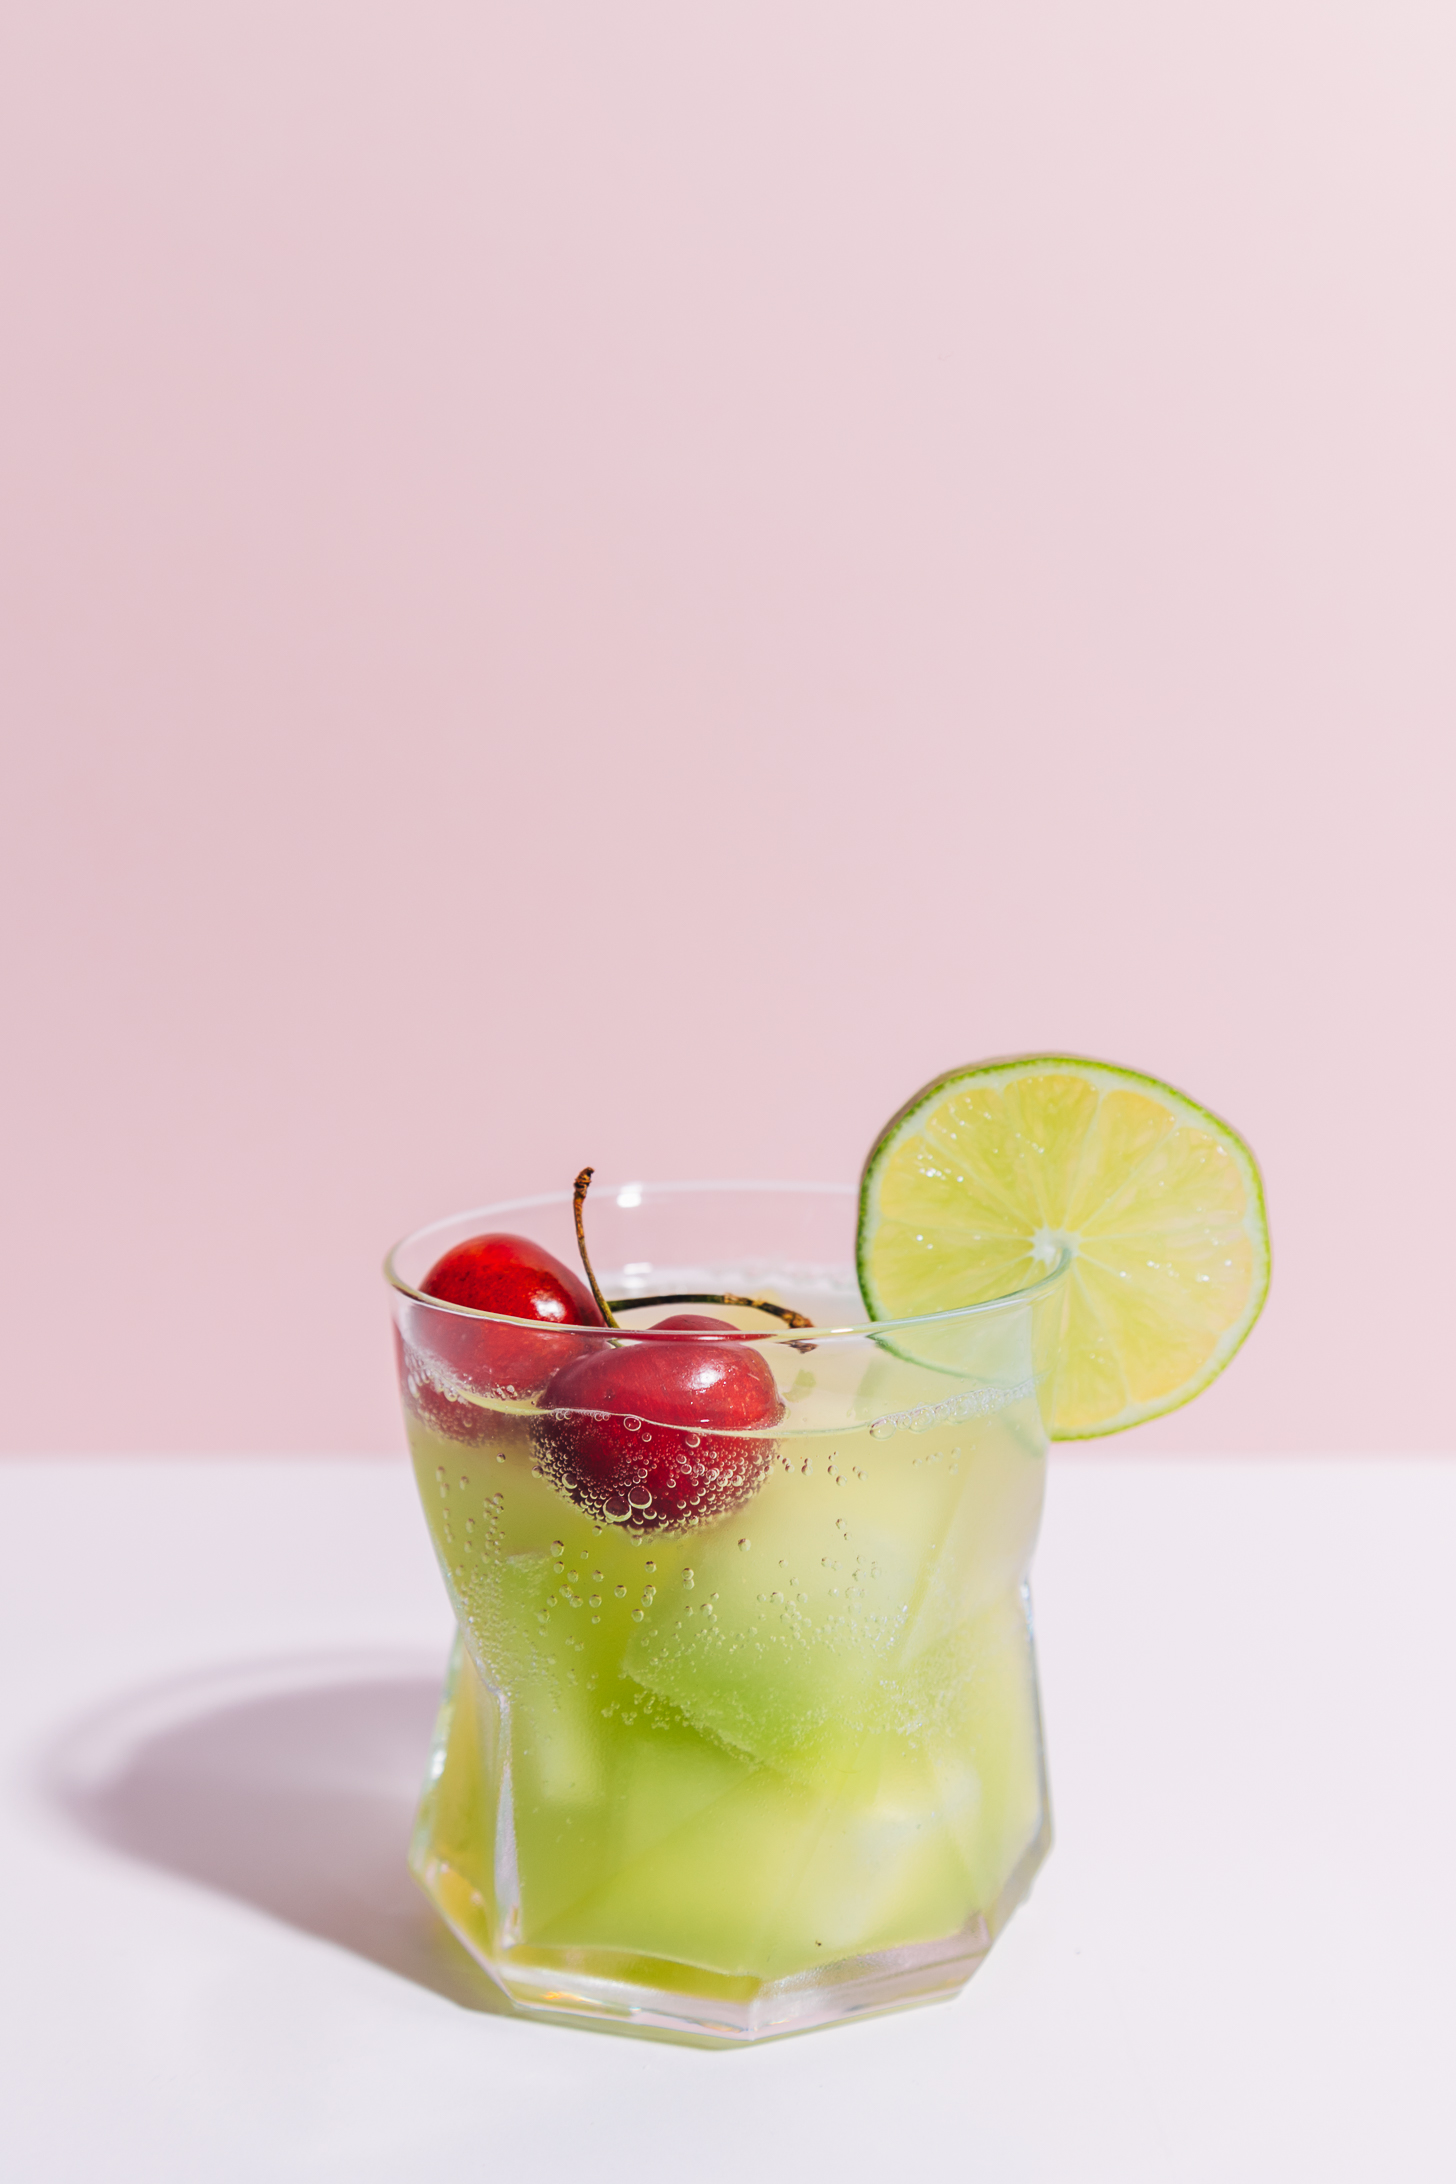 Glass of our Citrus and Melon Spritzer recipe garnished with fresh cherries and a lime slice